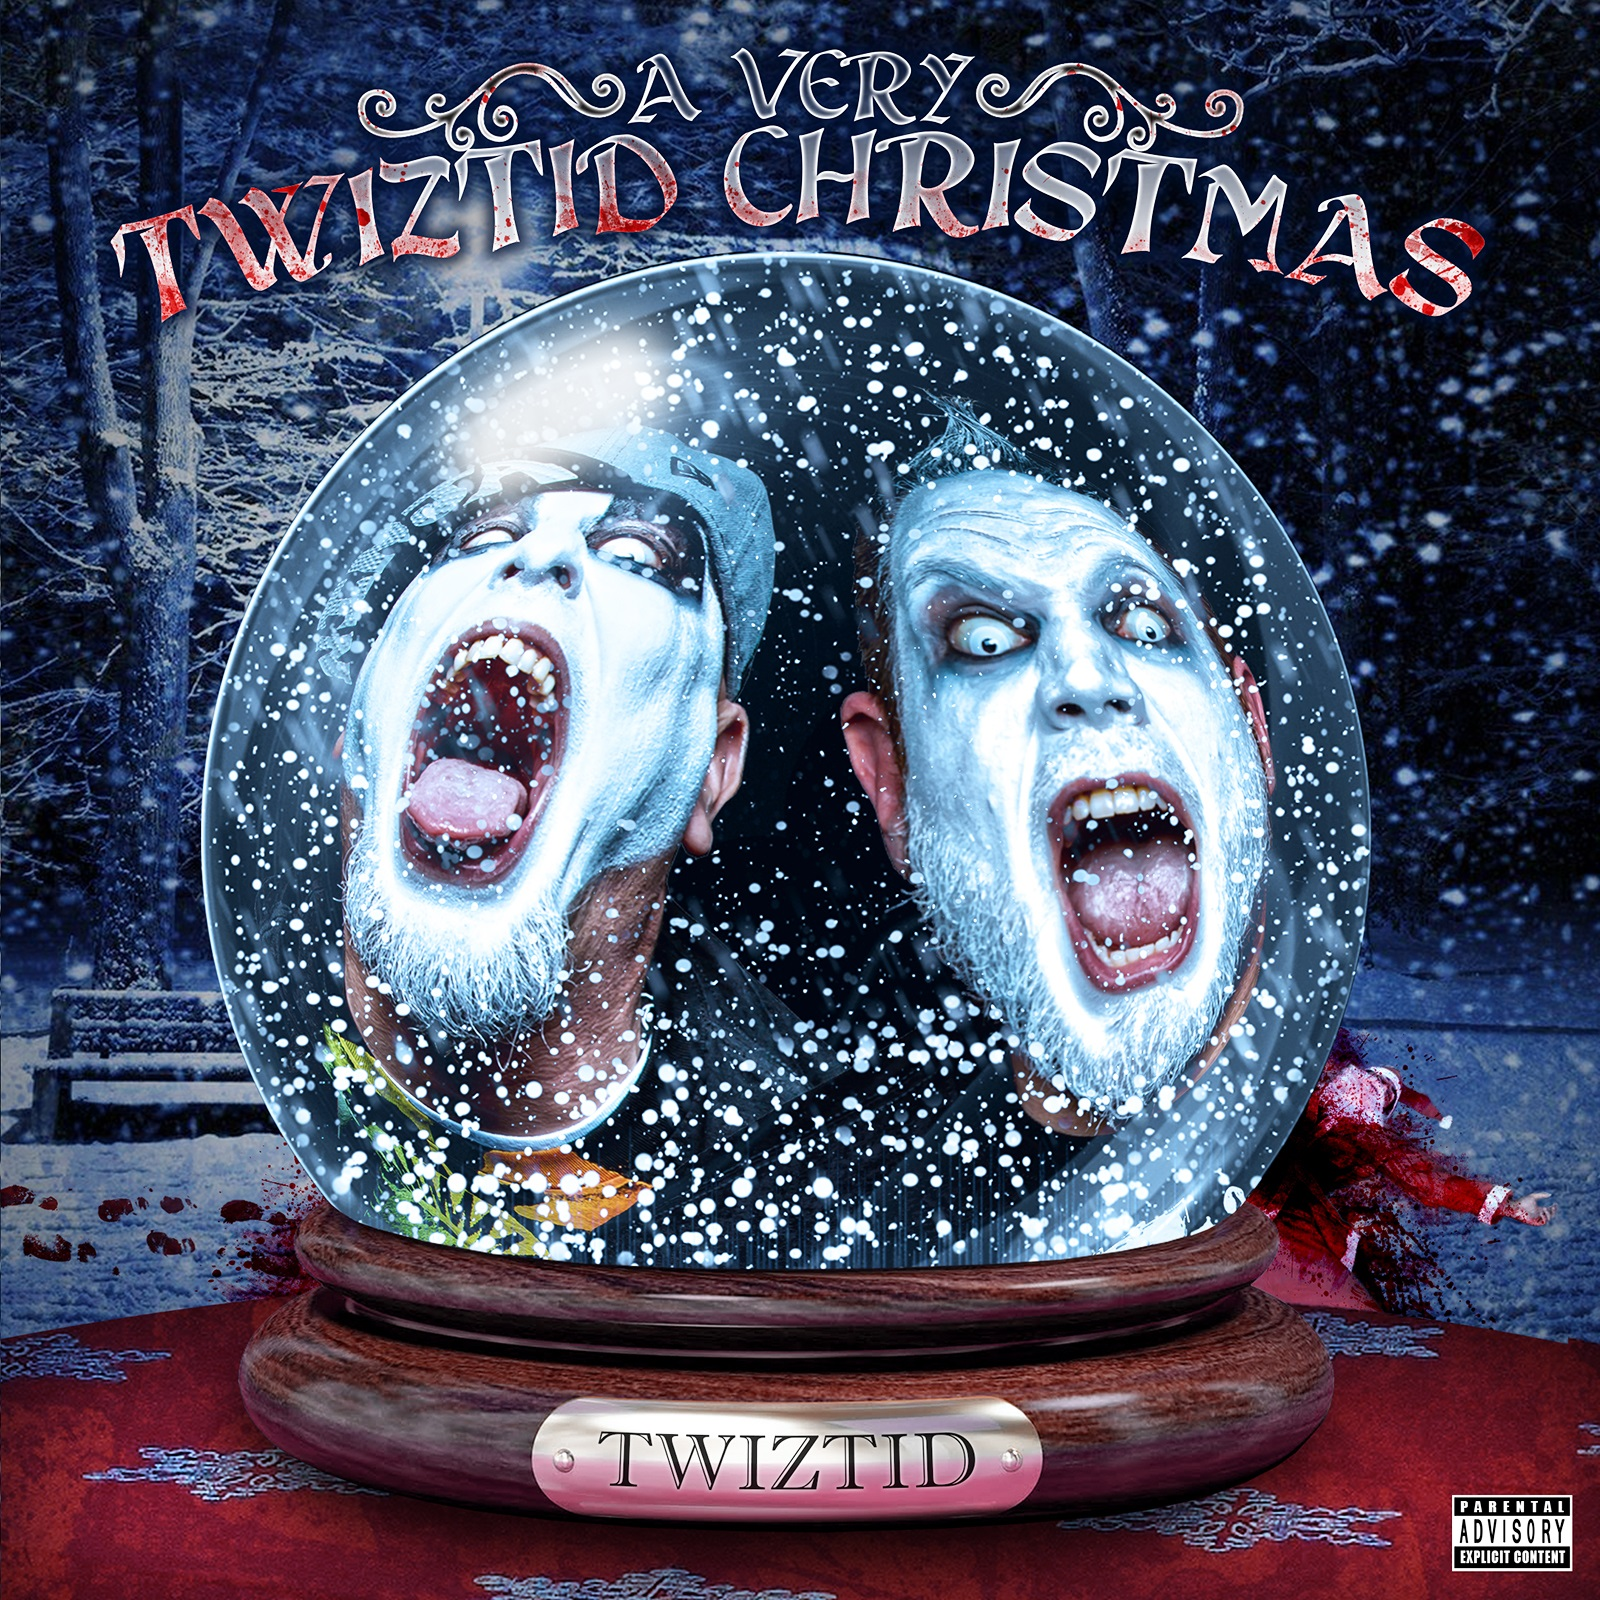 Twiztid - A Very Twizted Christmas [Indie Exclusive Limited Edition Vinyl Single]